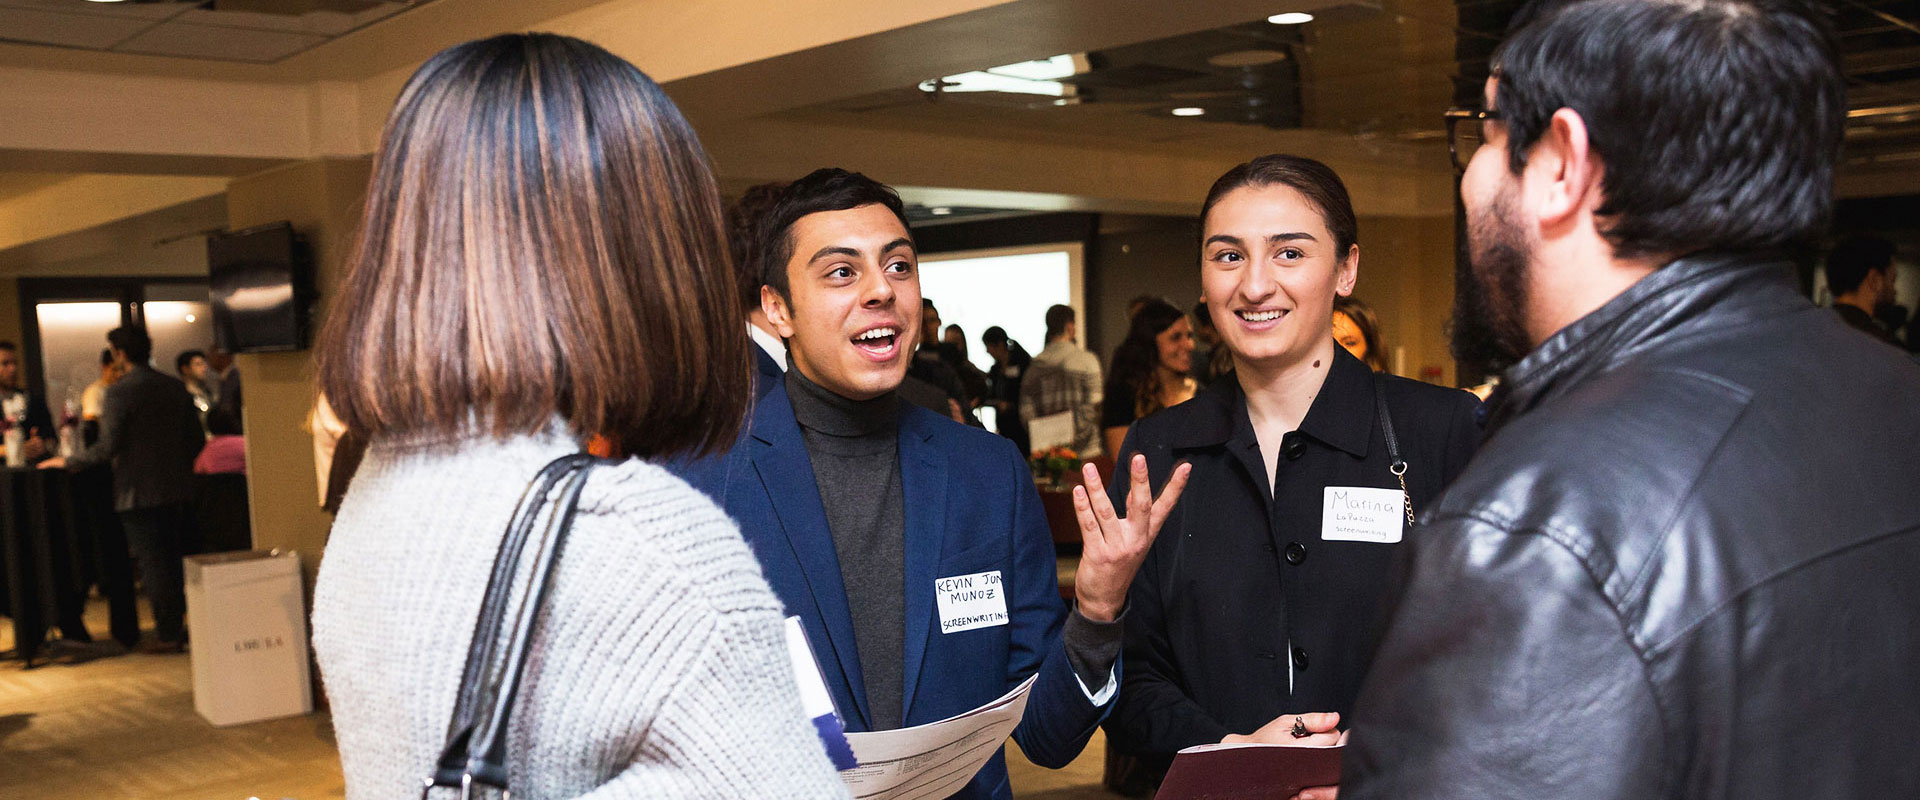 Several students talking to one another at a premier event